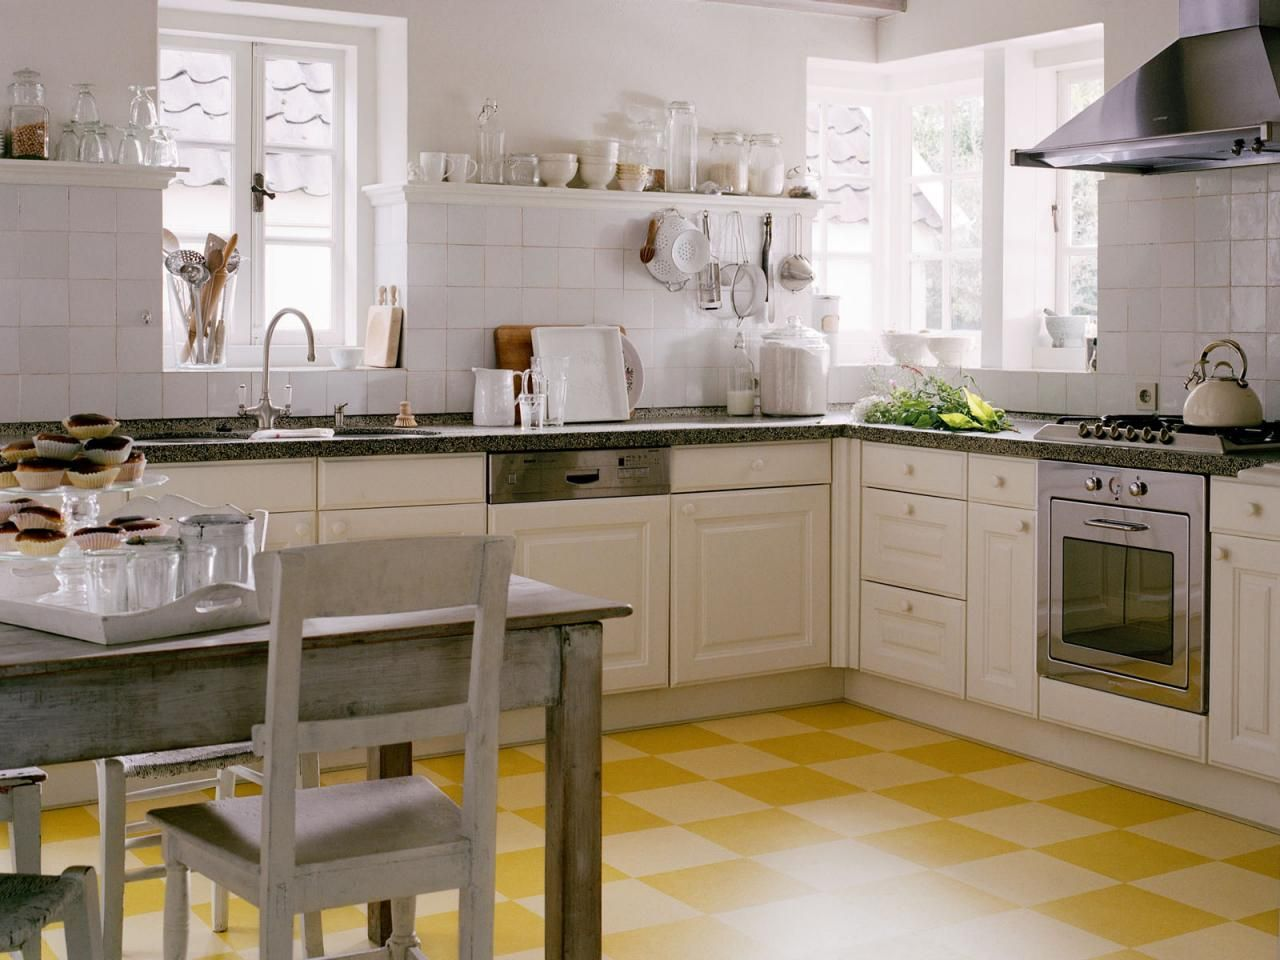 Sticky Tiles For Kitchen Floor 17 Best Ideas About Linoleum Kitchen Floors On Pinterest Paint